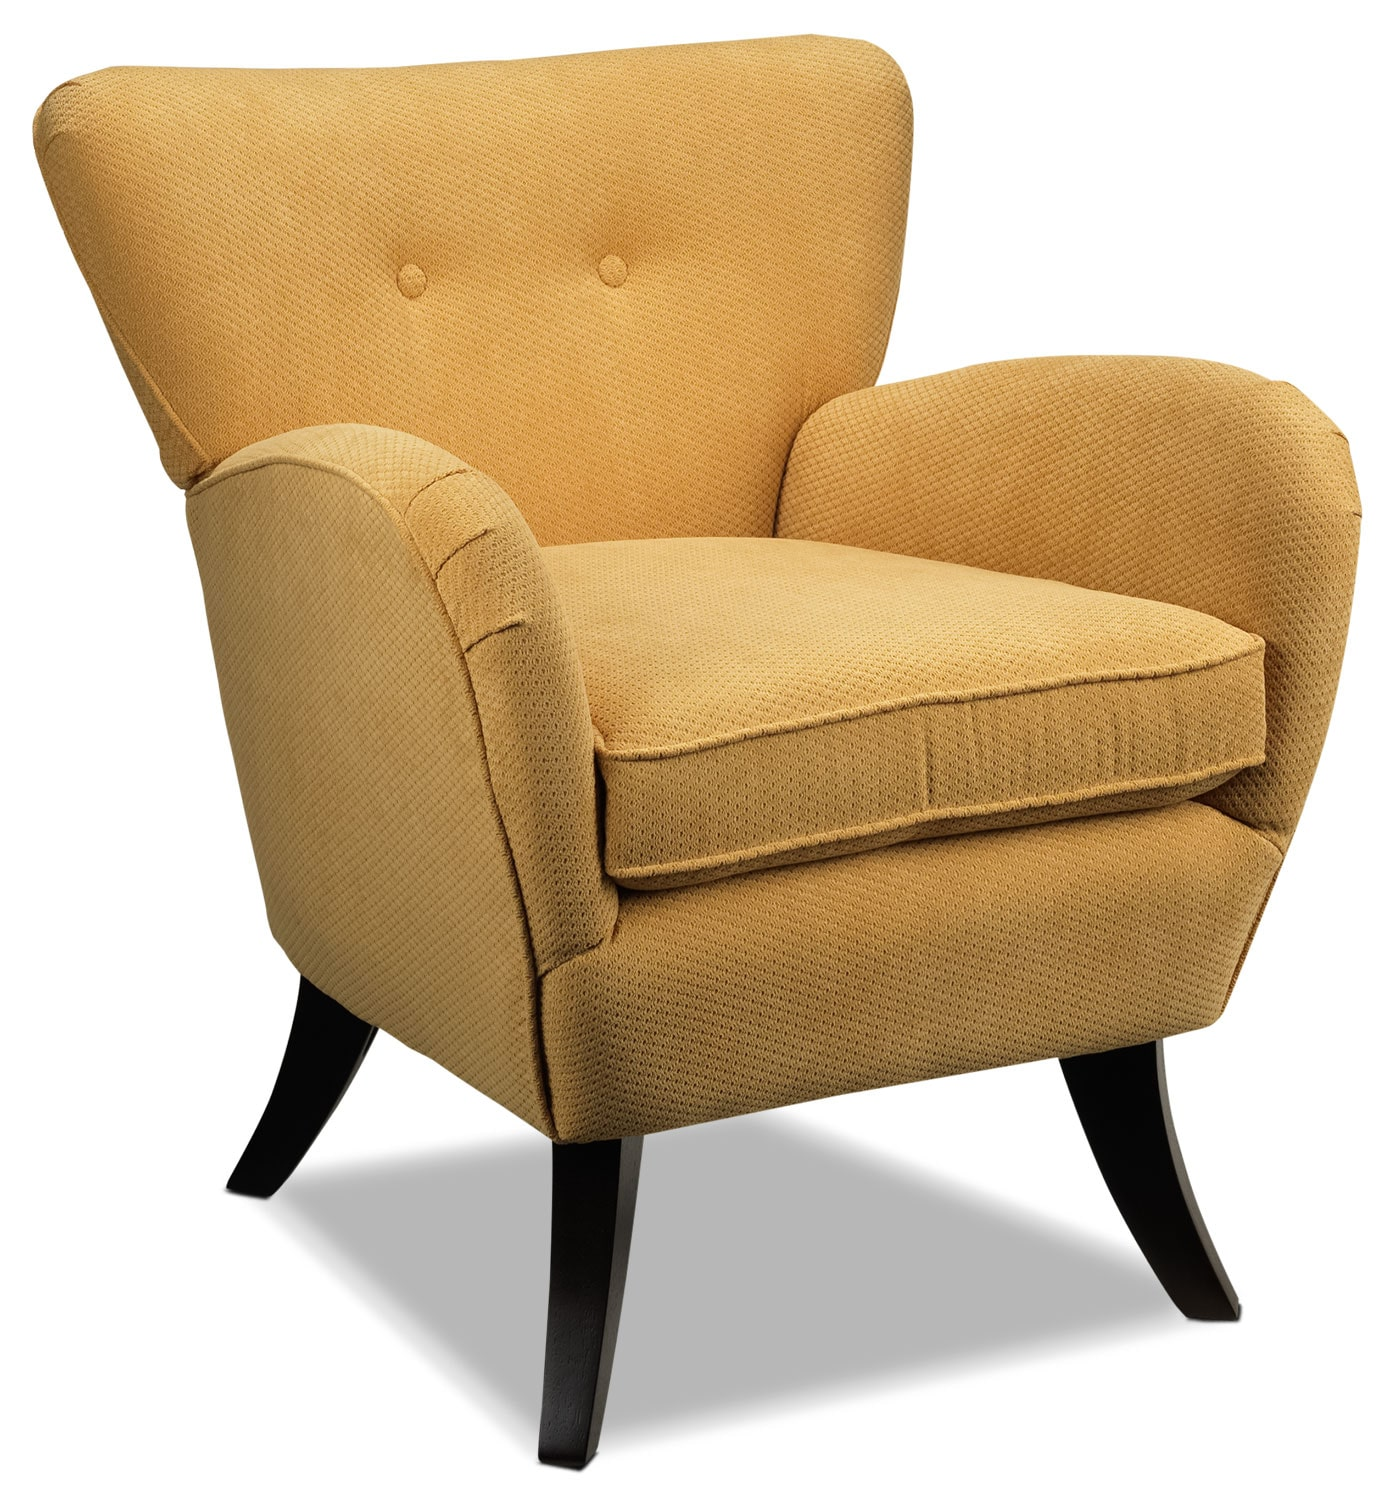 Elnora Accent Chair - Lemon Yellow